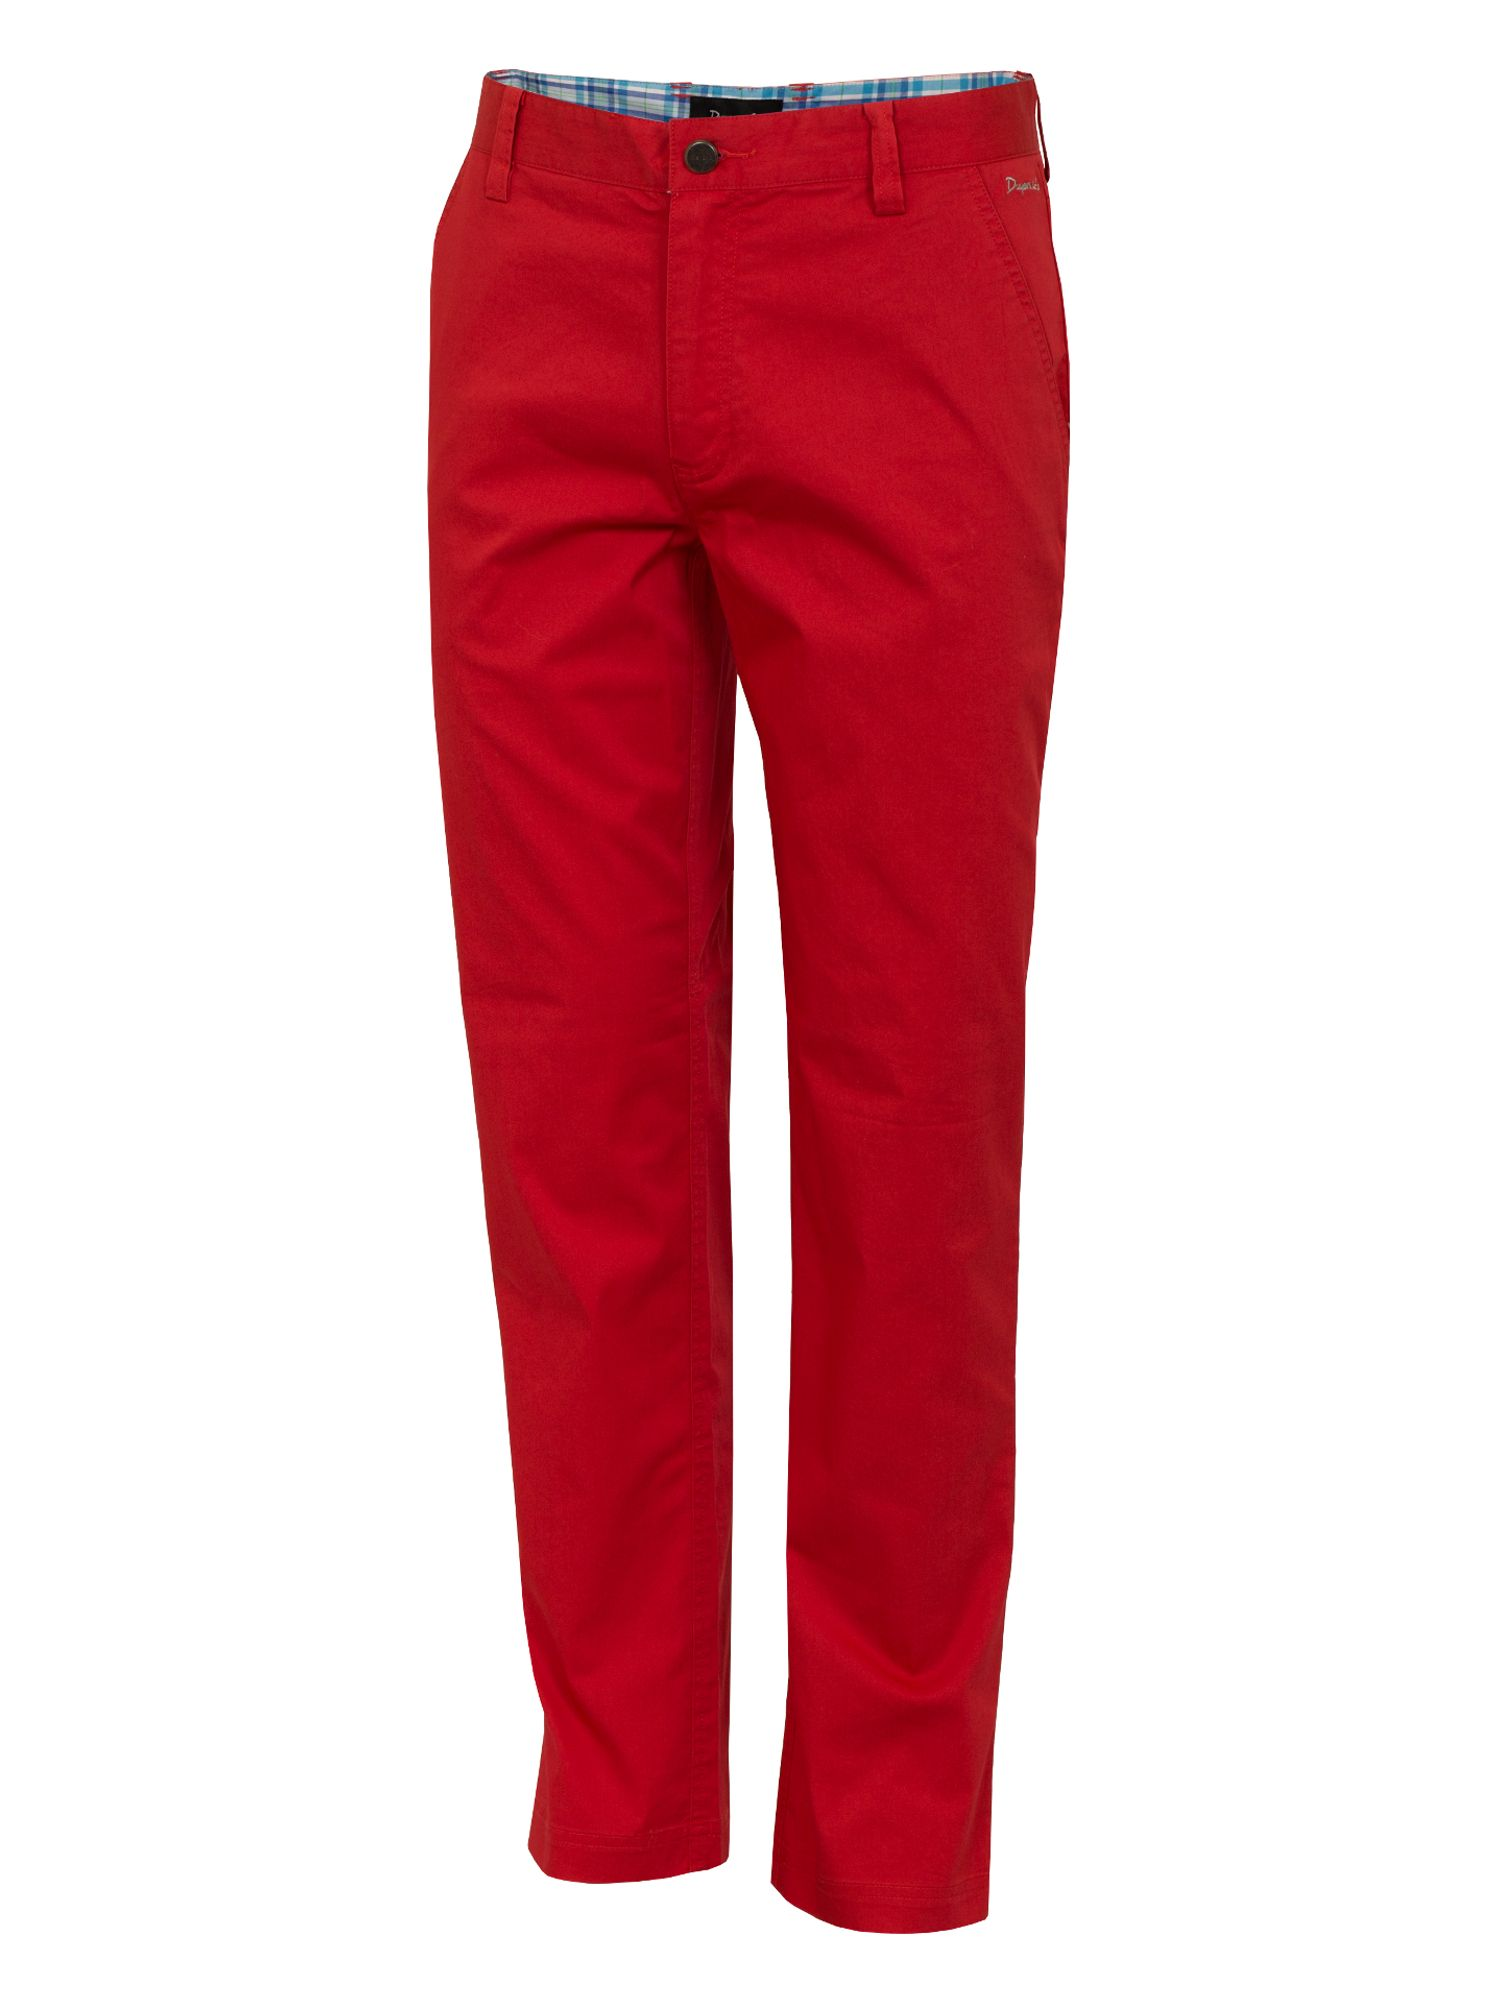 Dwyers and Co Men's Dwyers and Co Titanium chino trouser, Red